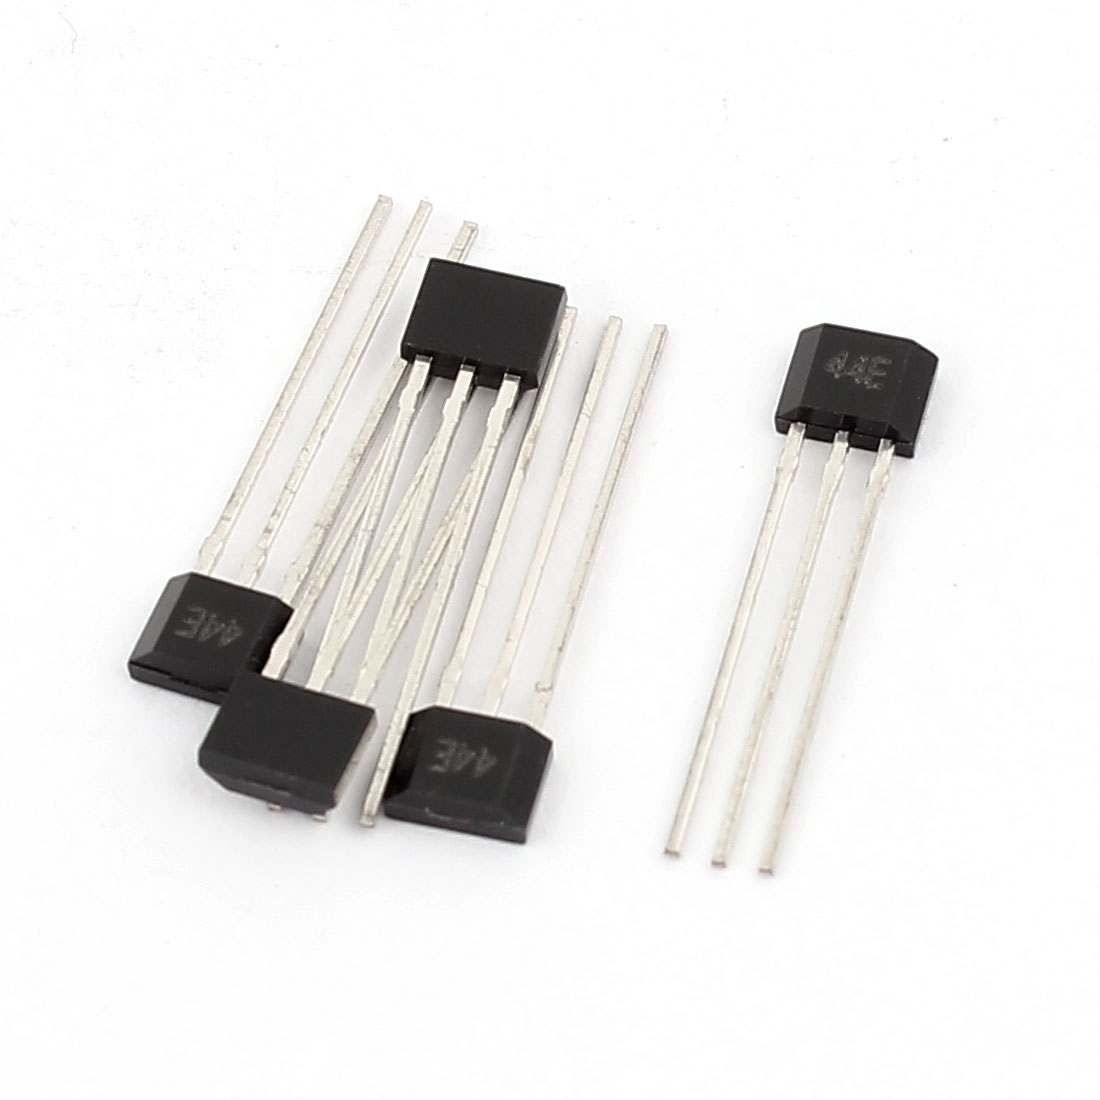 4 Pcs 44E 4.5-24V 3 Terminals Unipolar Sensitive Hall Effect Sensor Magnetic Detector